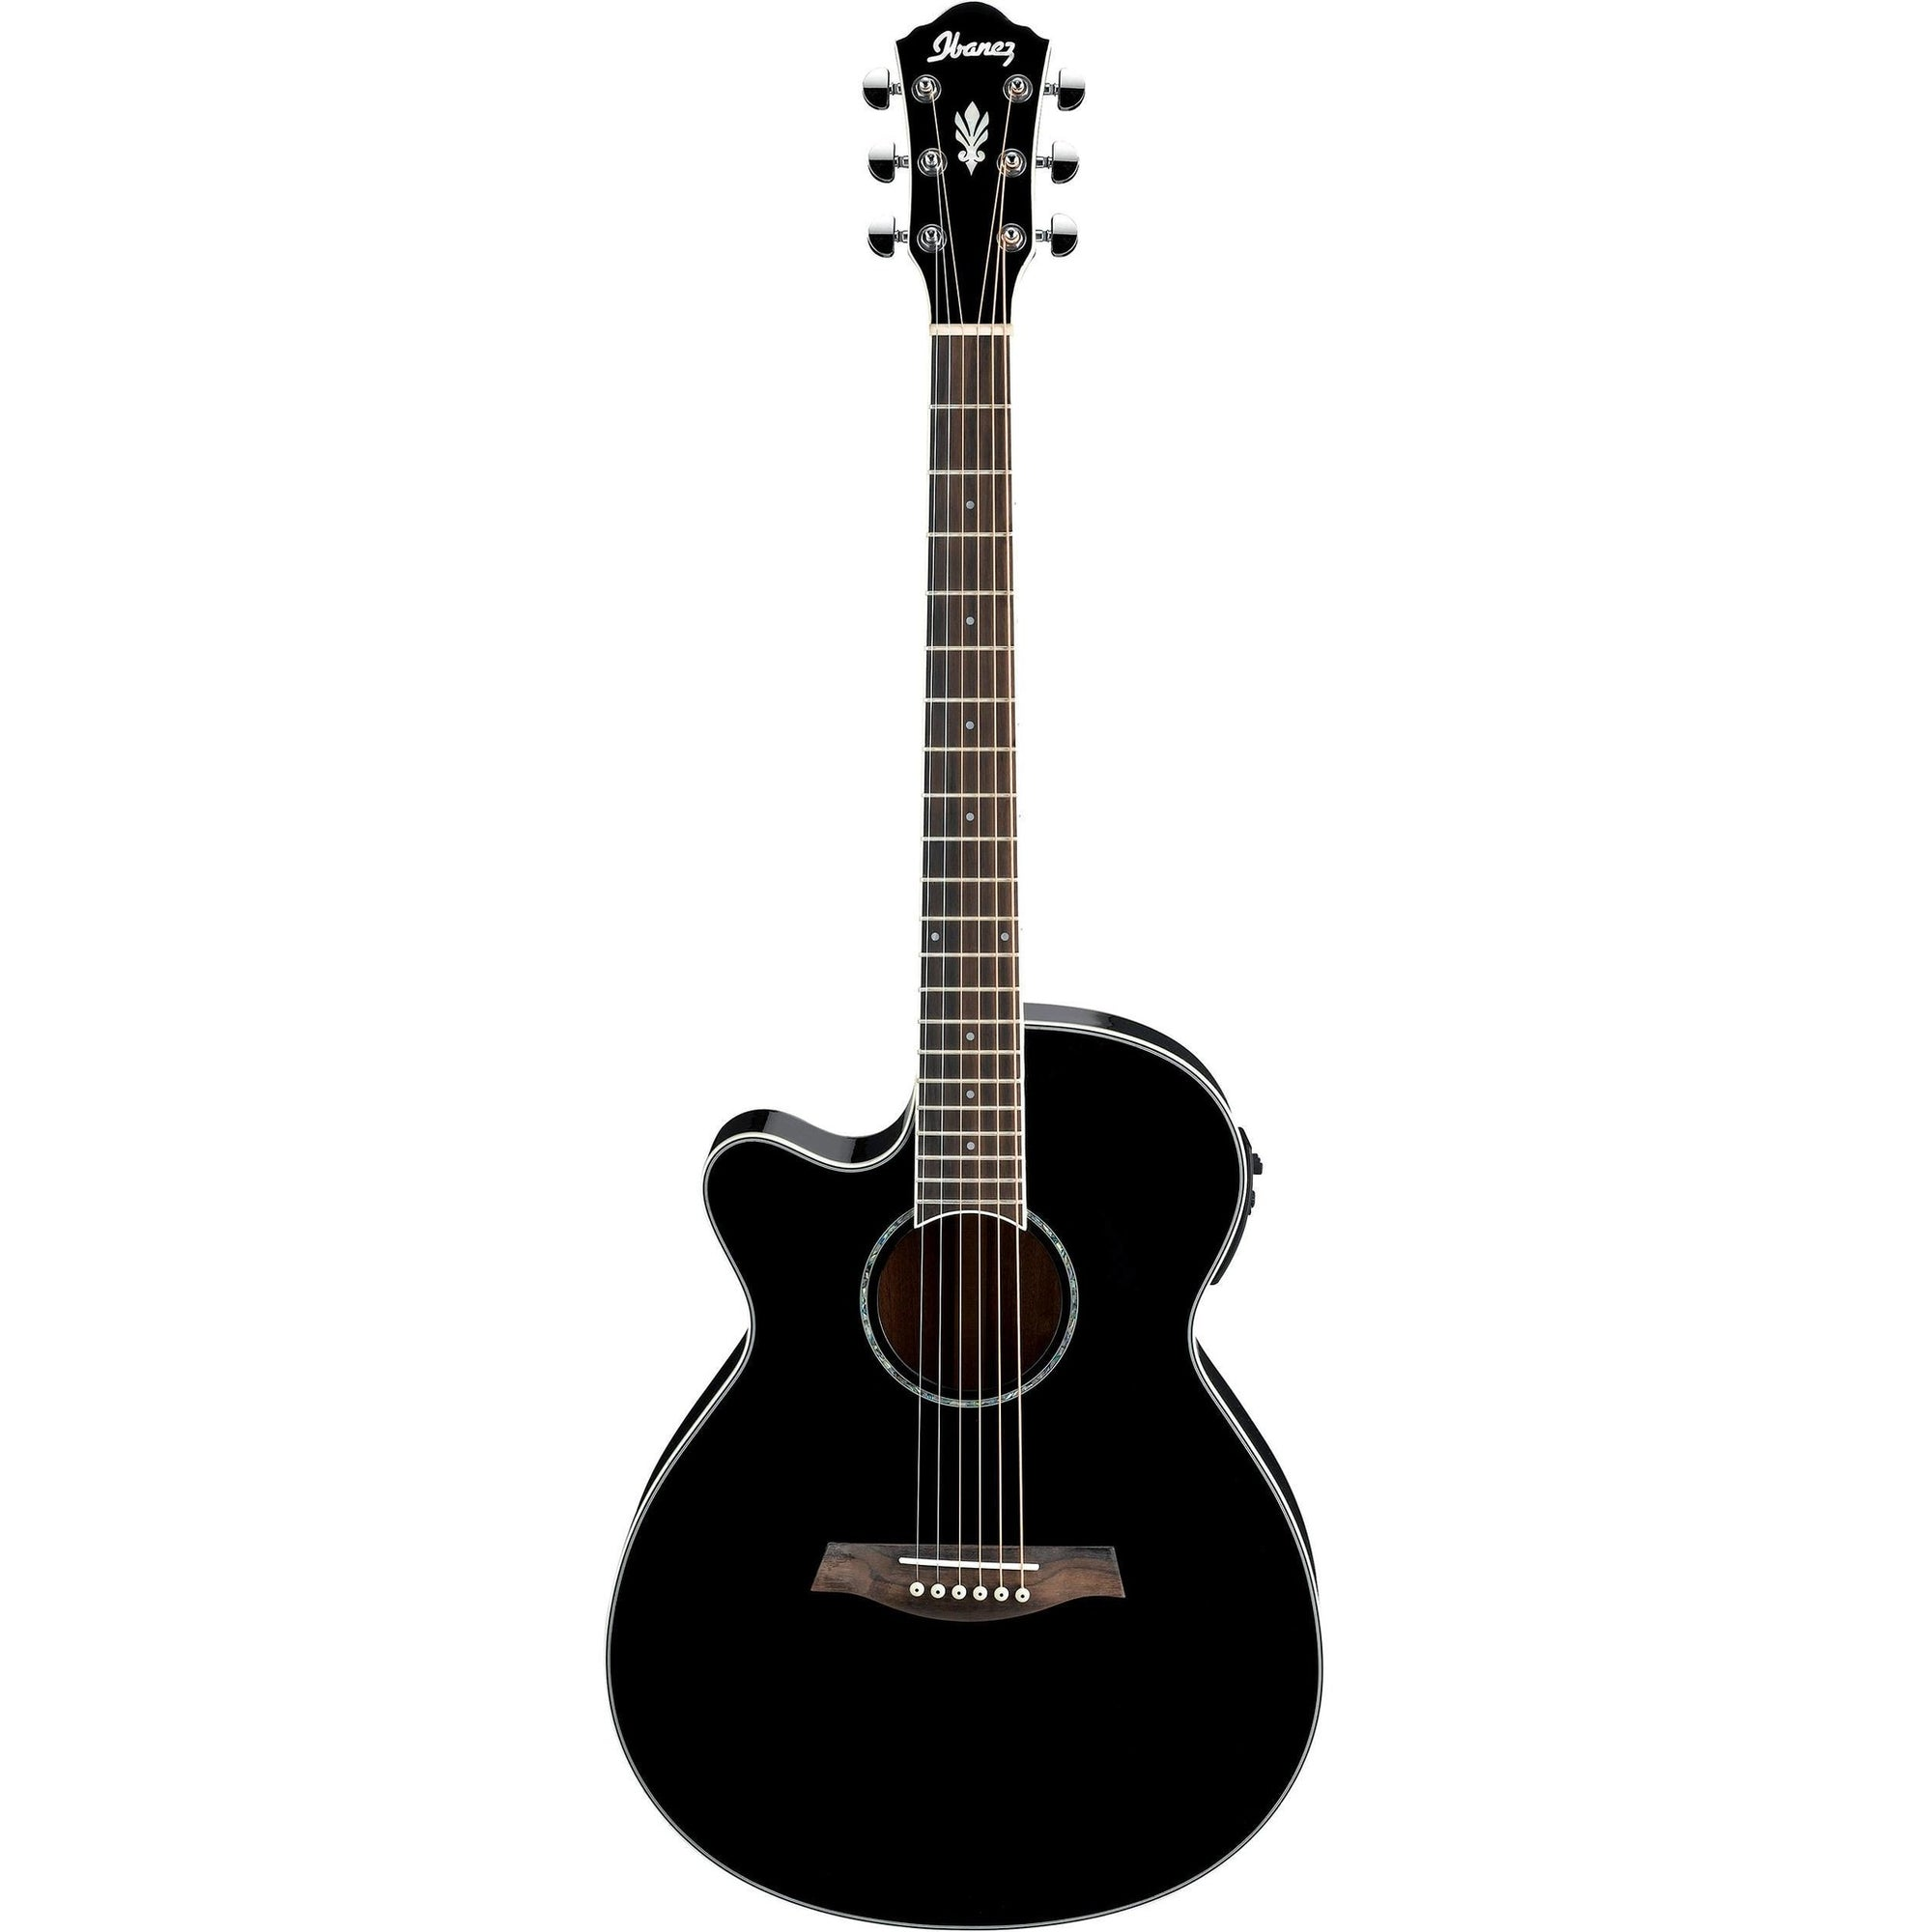 Ibanez AEG10LII-BK Black Left-Handed Acoustic-Electric Guitar, Black